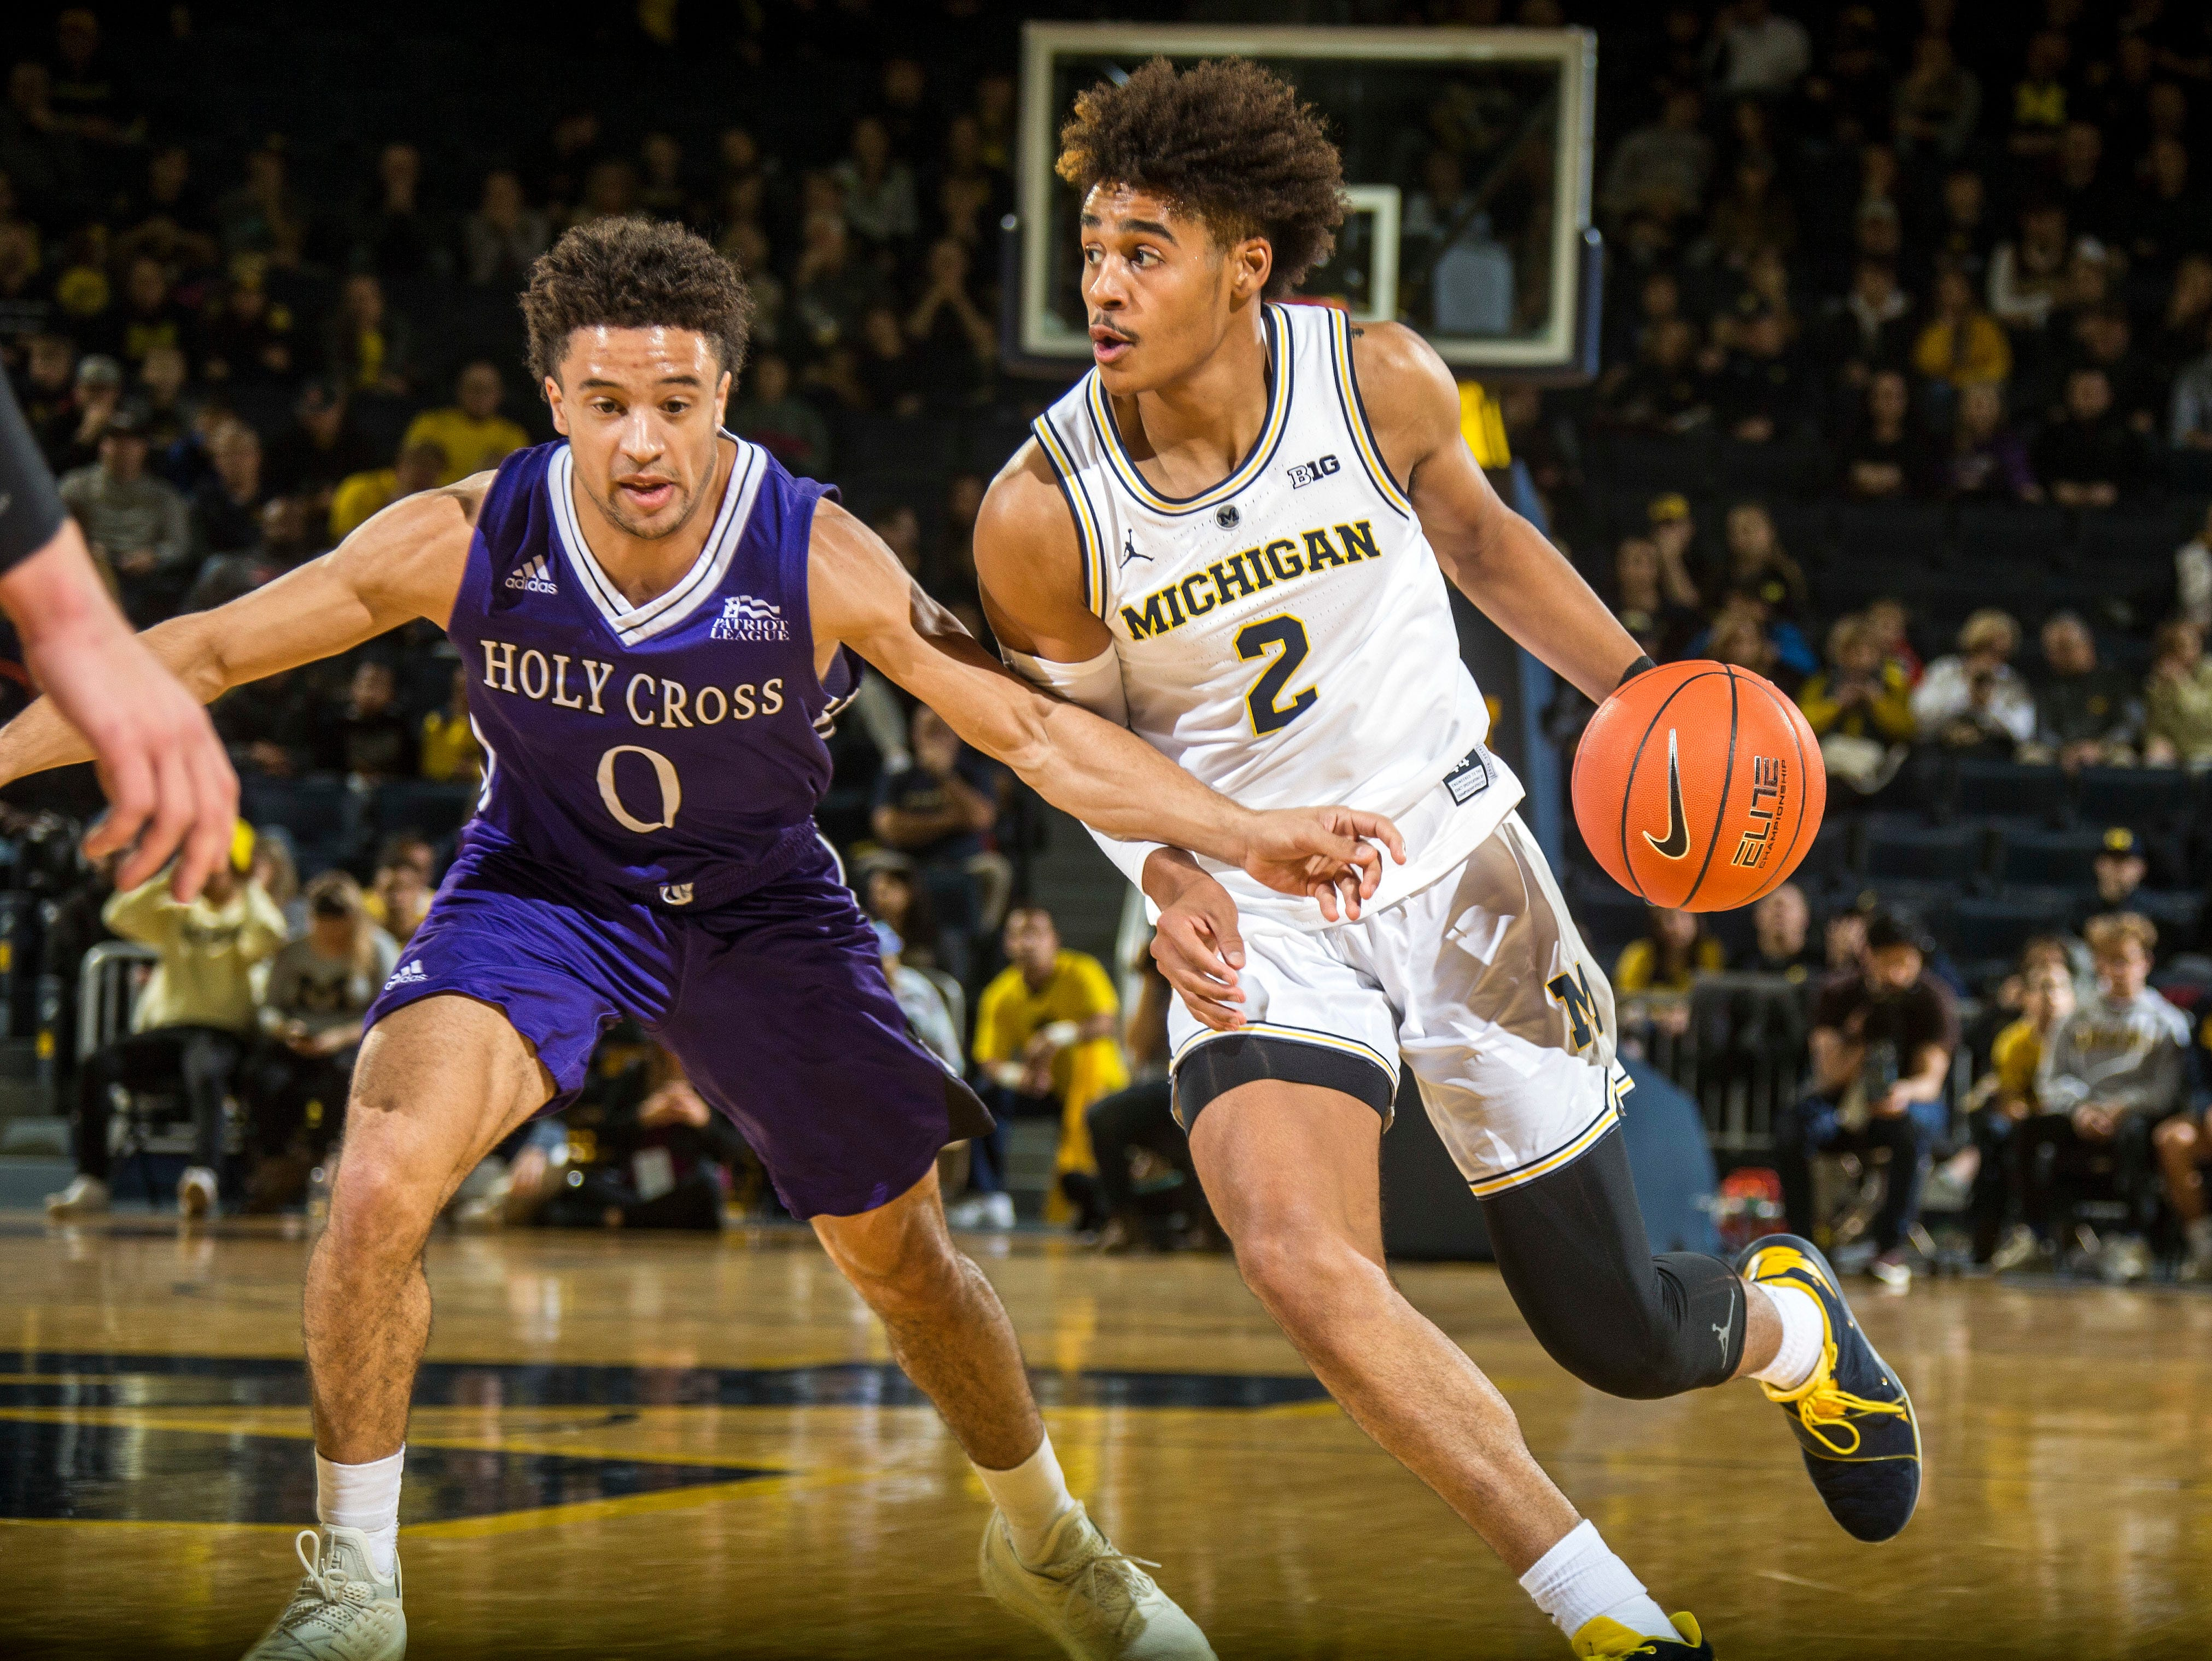 Holy Cross guard Caleb Green (0) defends Michigan guard Jordan Poole (2) in the first half of an NCAA college basketball game at Crisler Center in Ann Arbor, Mich., Saturday, Nov. 10, 2018. Michigan won 56-37. (AP Photo/Tony Ding)